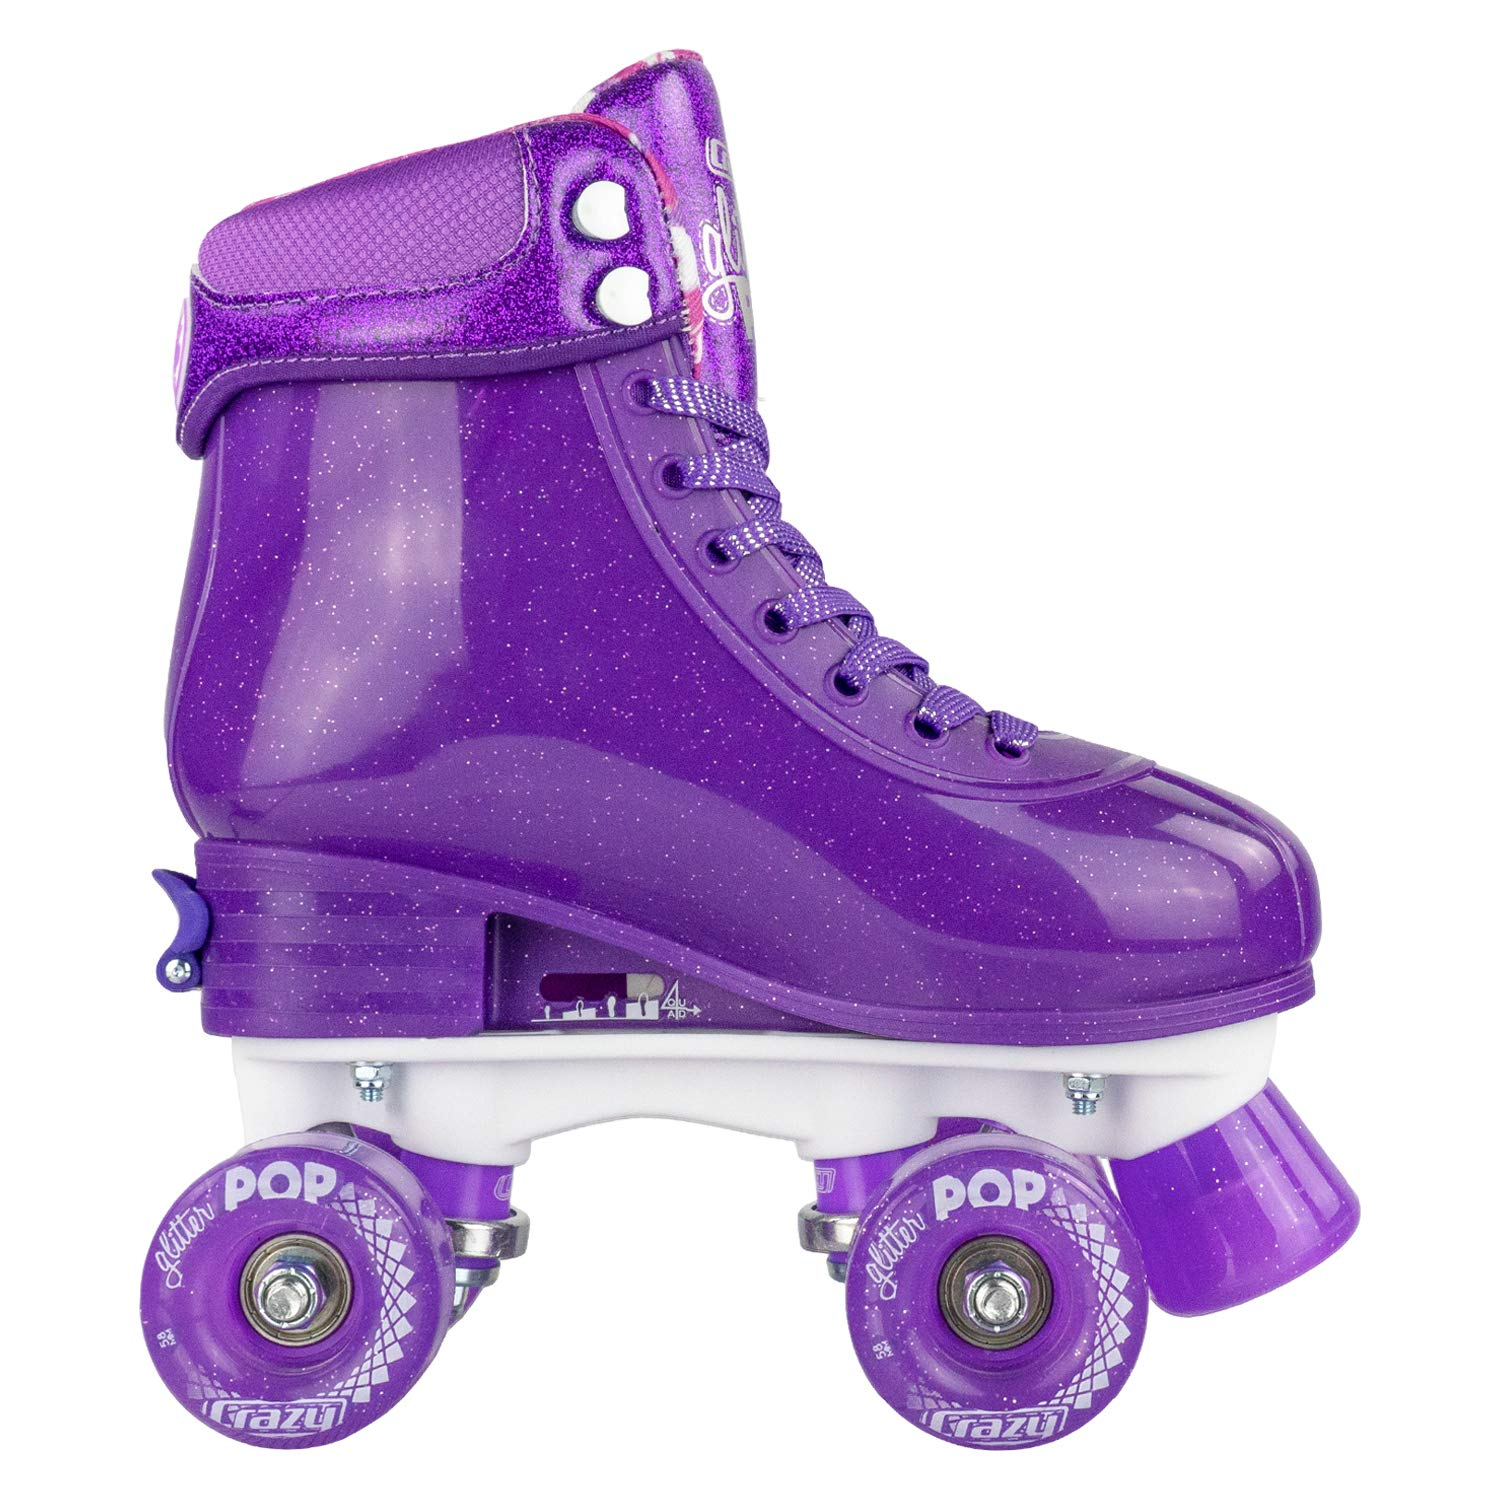 Crazy Skates Glitter POP Adjustable Roller Skates for Girls and Boys | Size Adjustable Quad Skates That Fit 4 Shoe Sizes | Purple (Sizes 3-6) by Crazy Skates (Image #8)